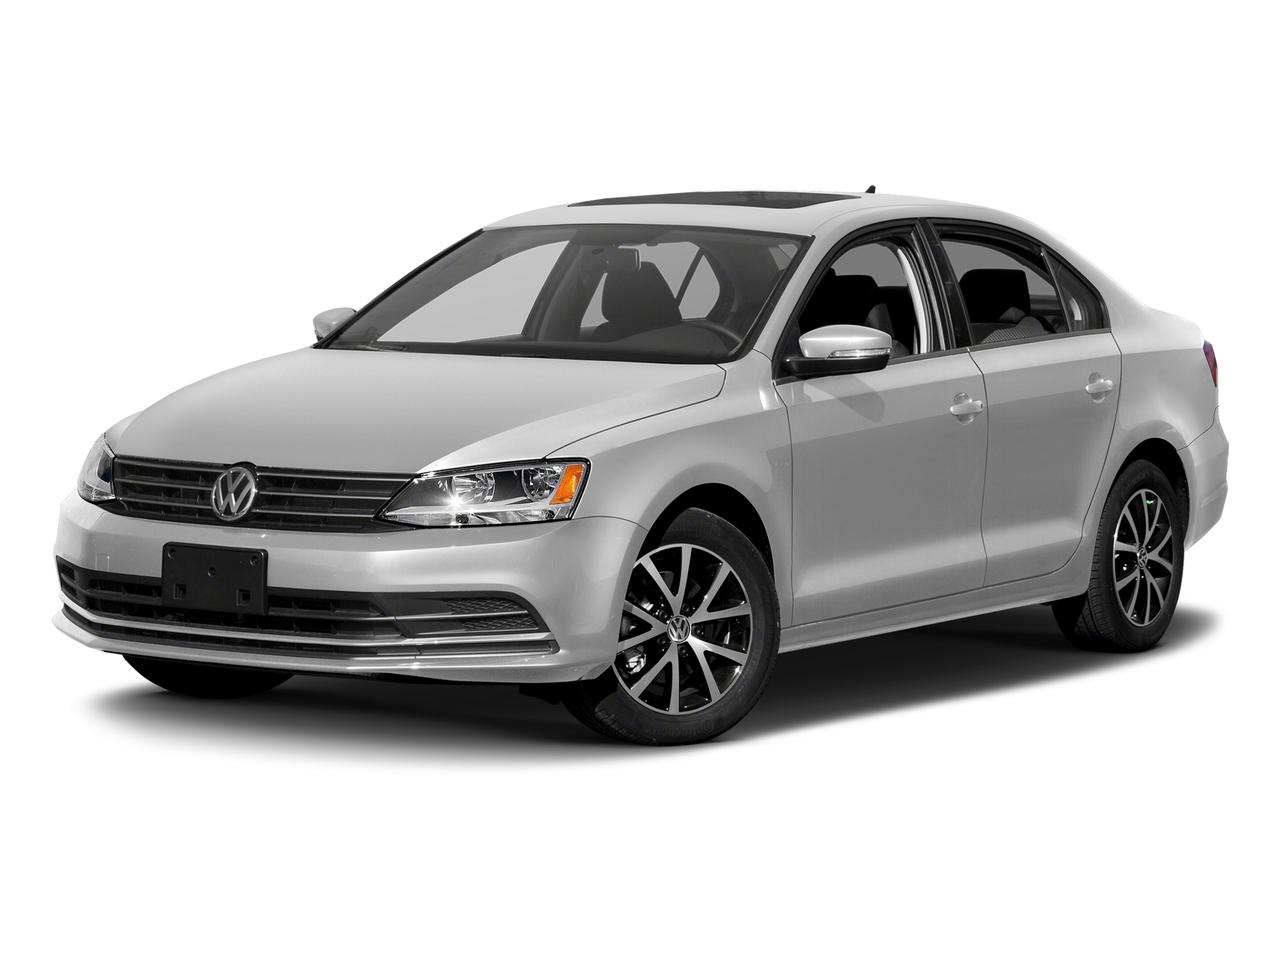 2017 Volkswagen Jetta Vehicle Photo in Cape May Court House, NJ 08210